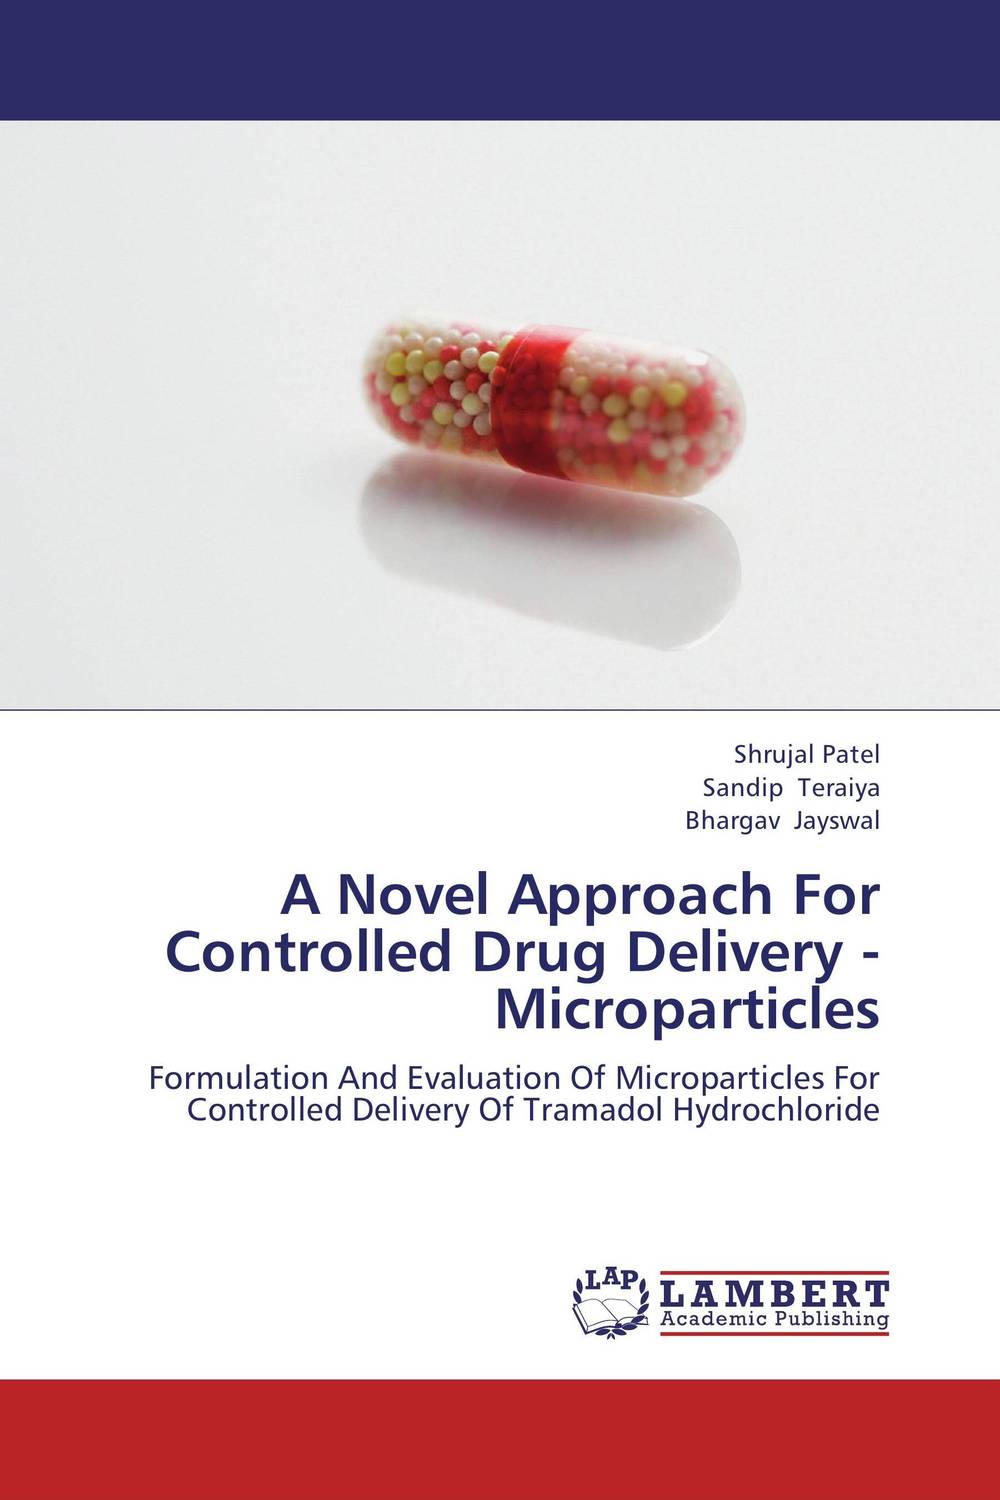 A Novel Approach For Controlled Drug Delivery - Microparticles shubhini saraf a k srivastava and gyanendra singh niosome based delivery of an antitubercular drug